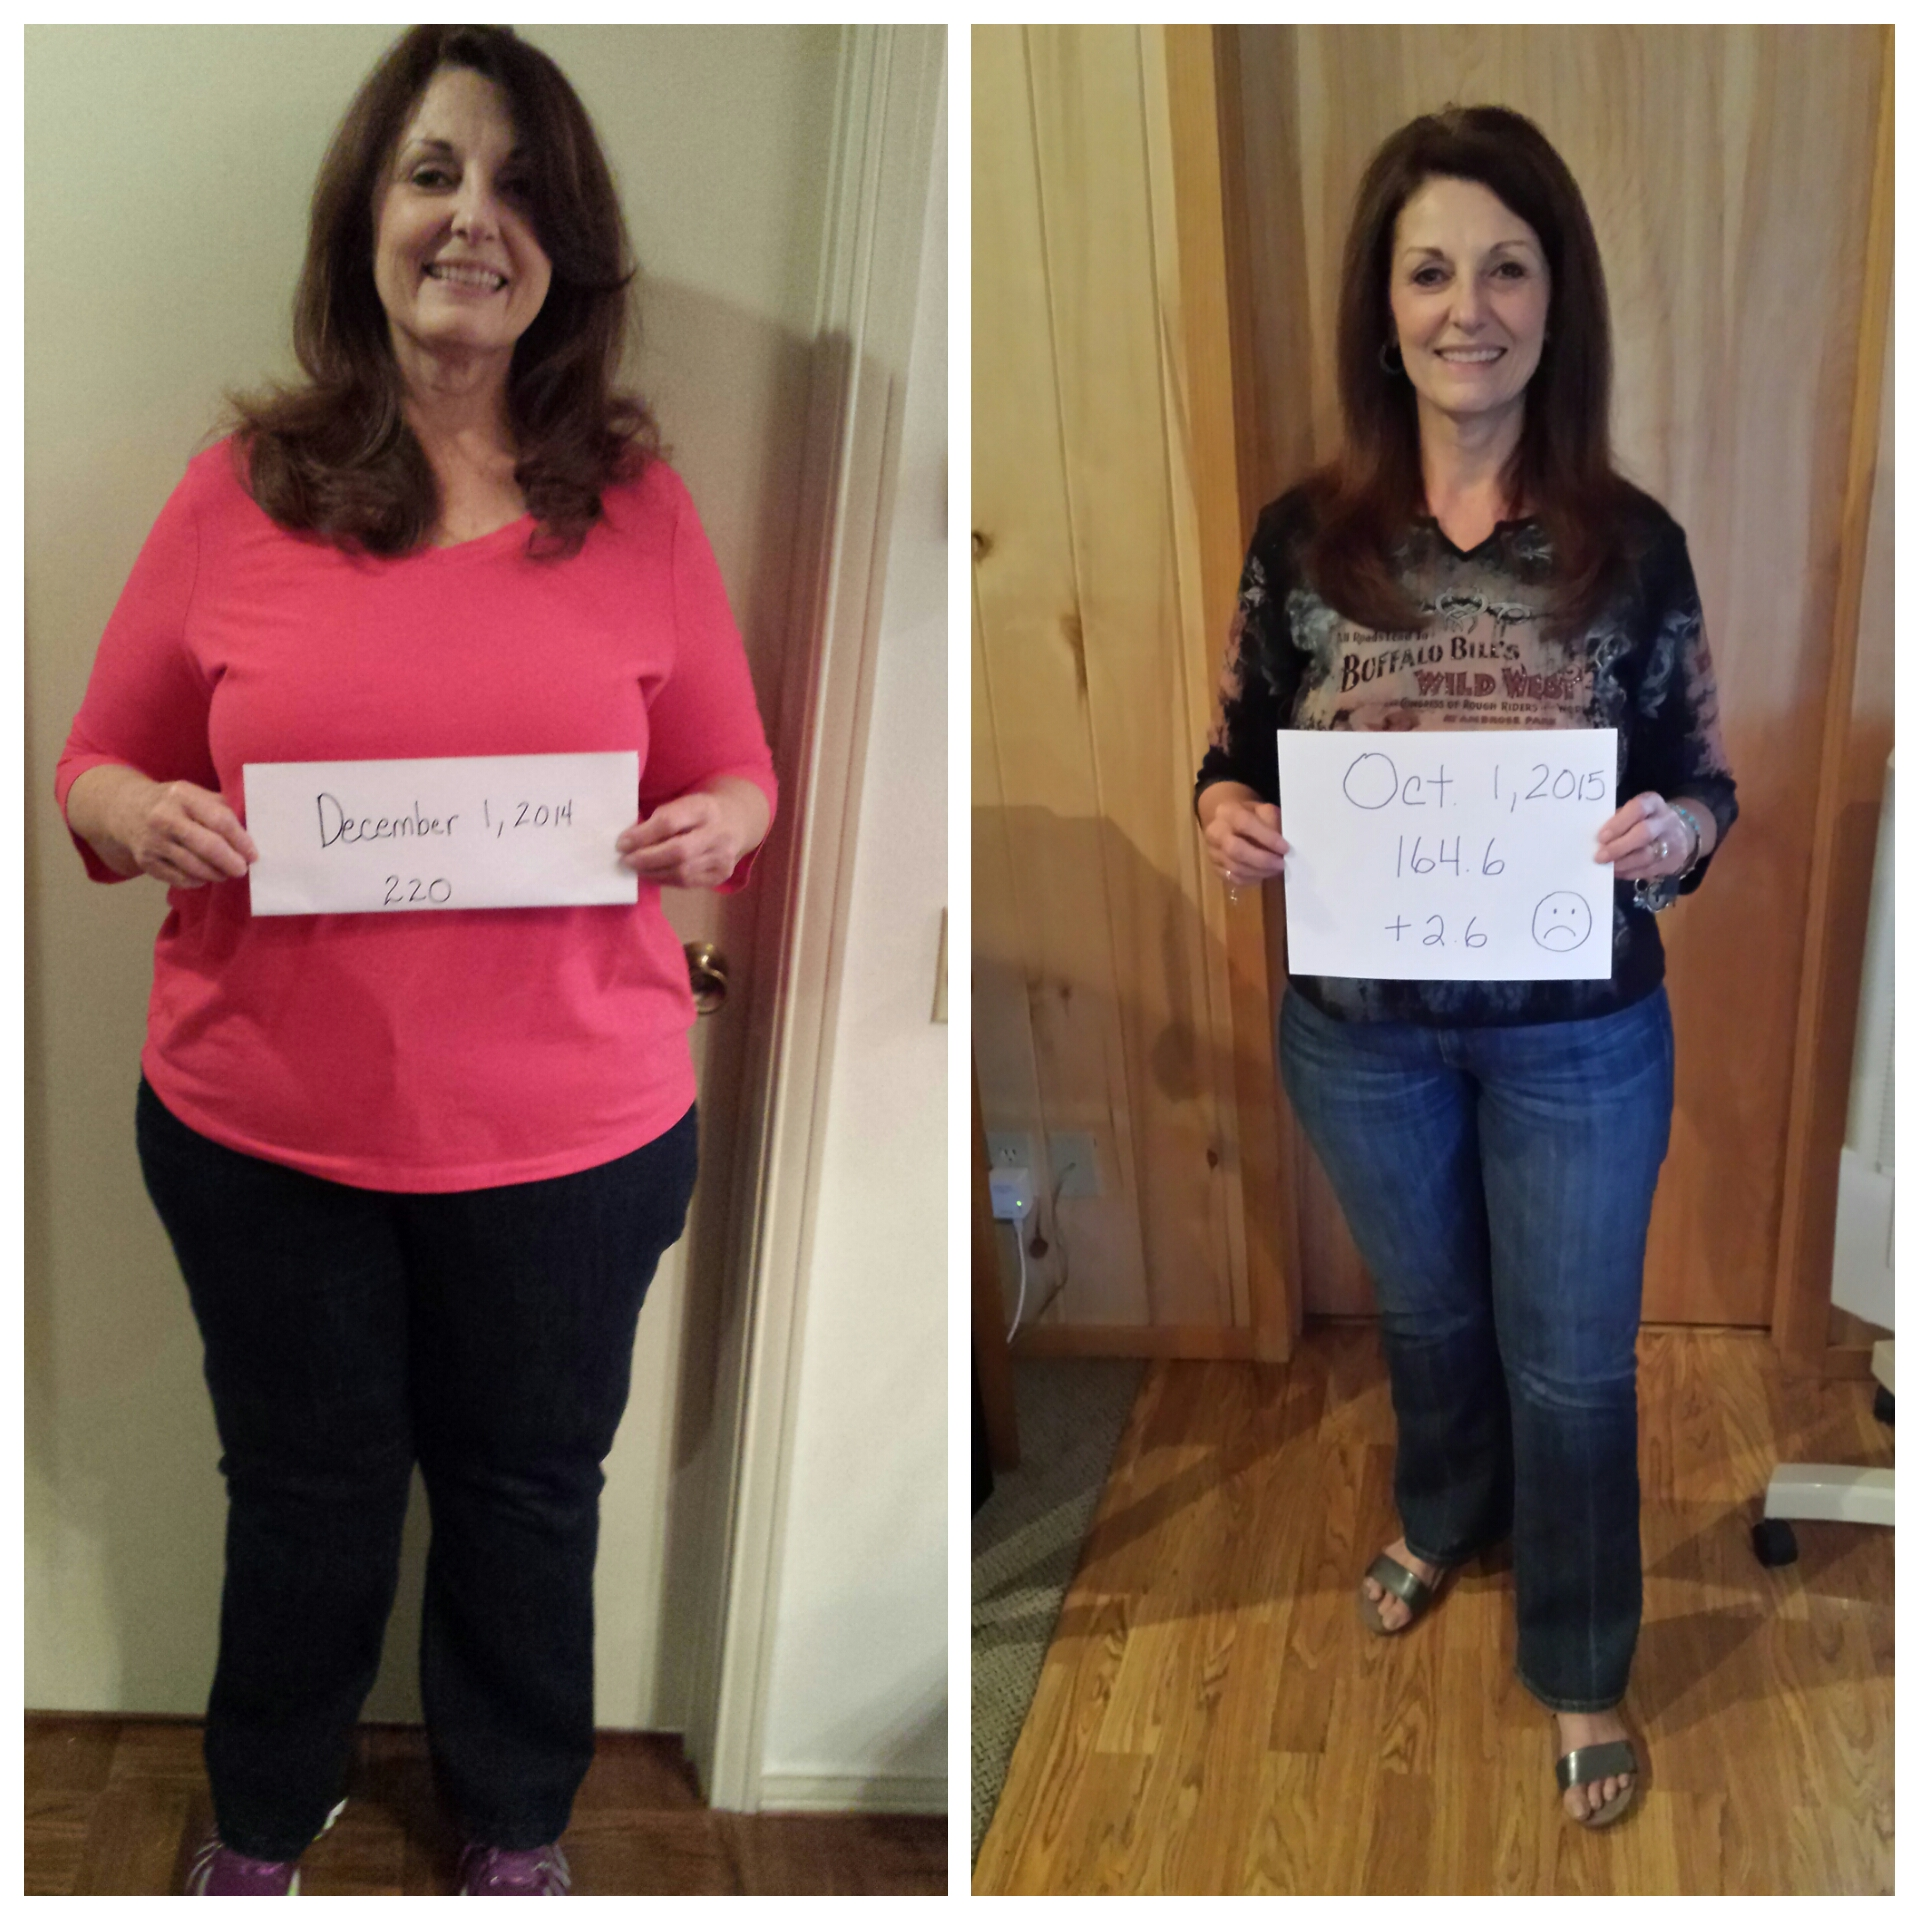 debbie comparison first fat pic with Oct pic